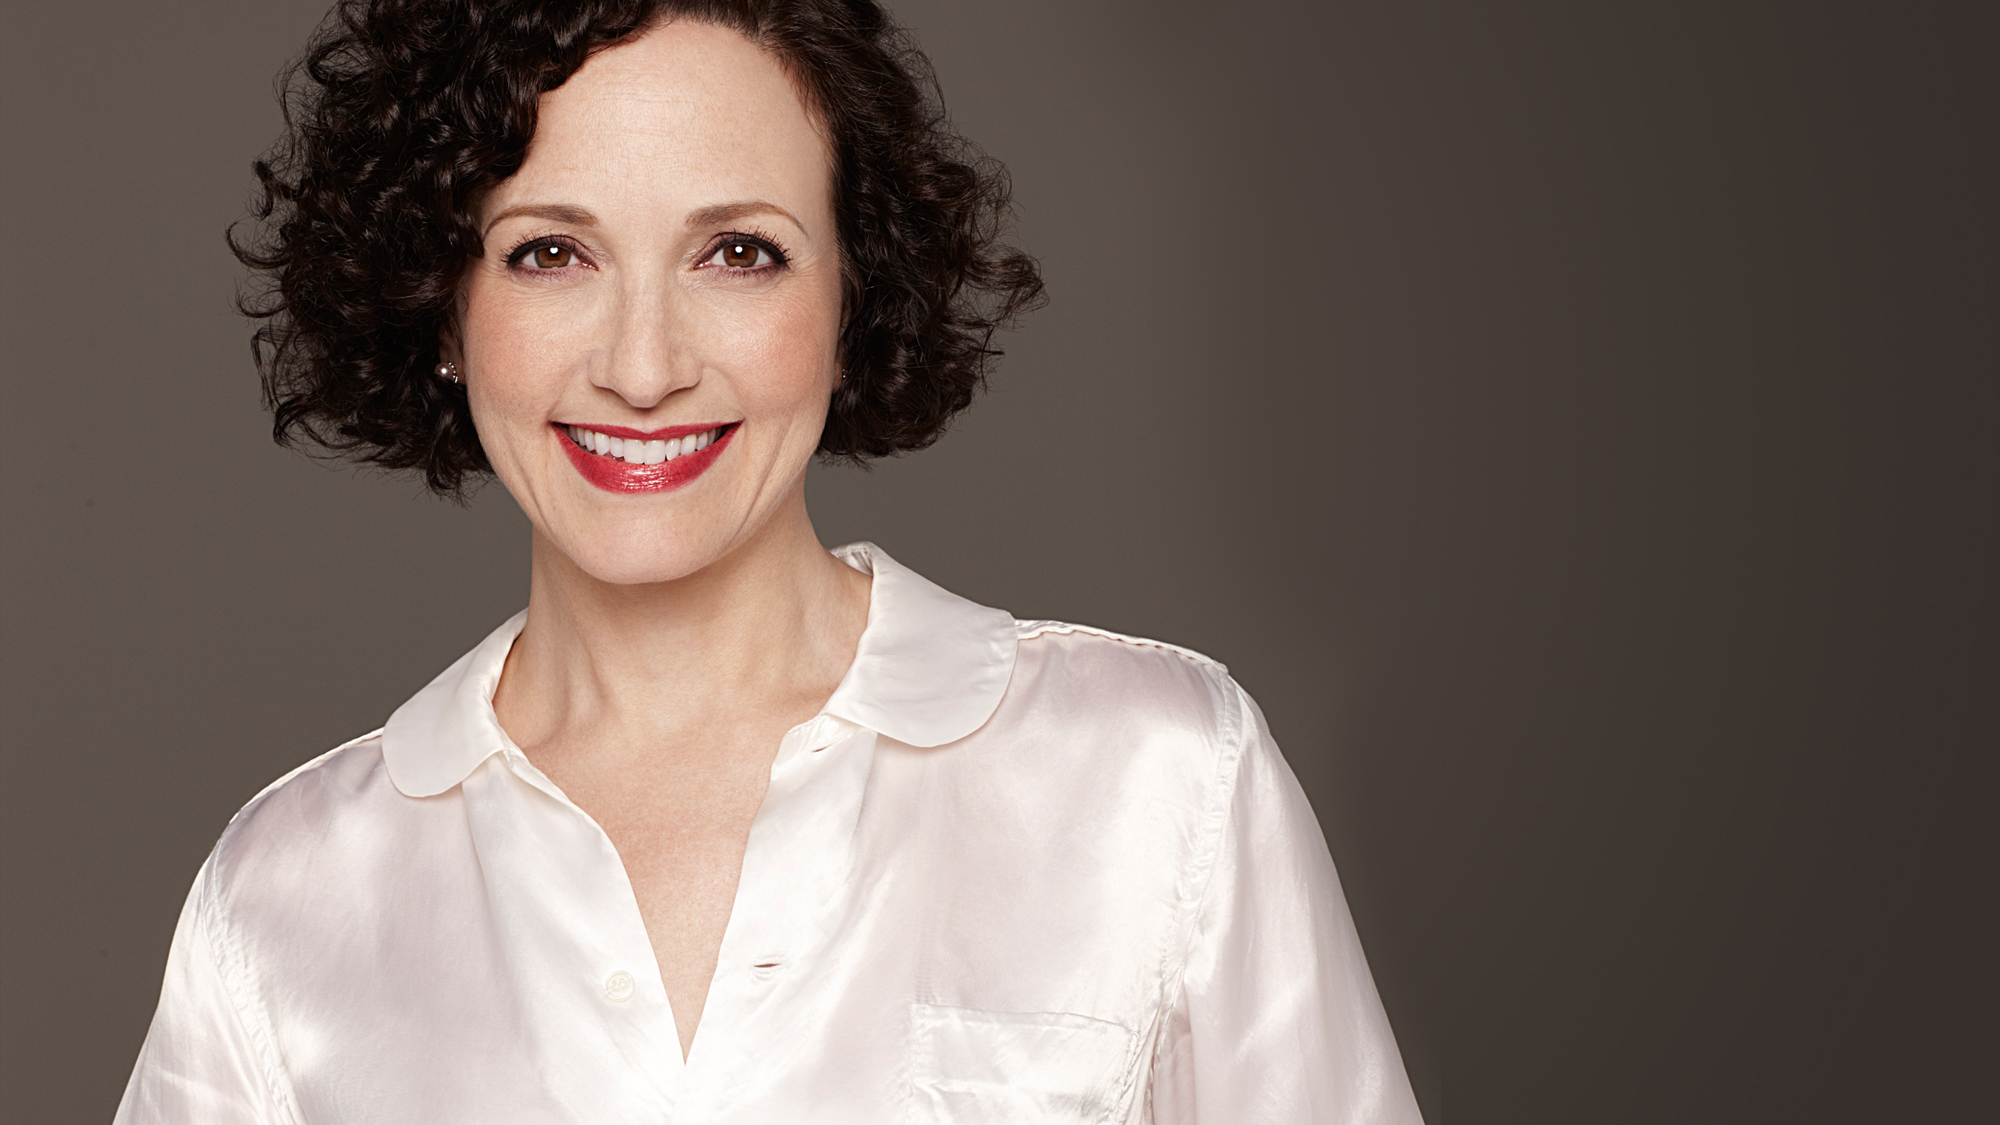 bebe-neuwirth-denies-any-knowledge-of-possible-frasier-reboot-she-is-still-supportive-of-the-team